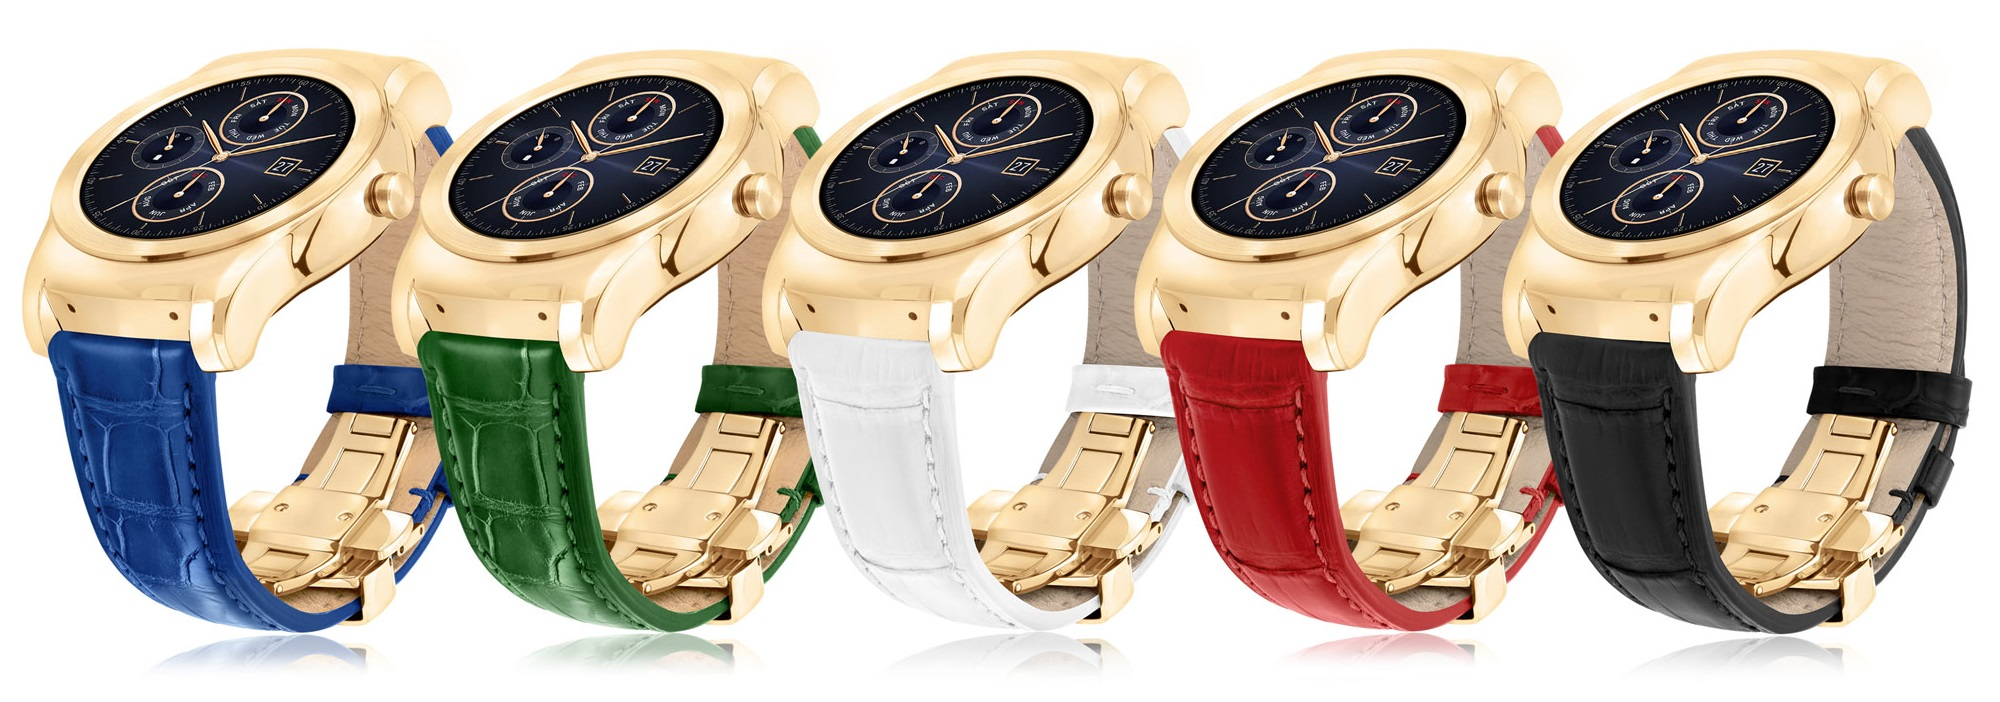 LG Watch Urbane Luxe Gold